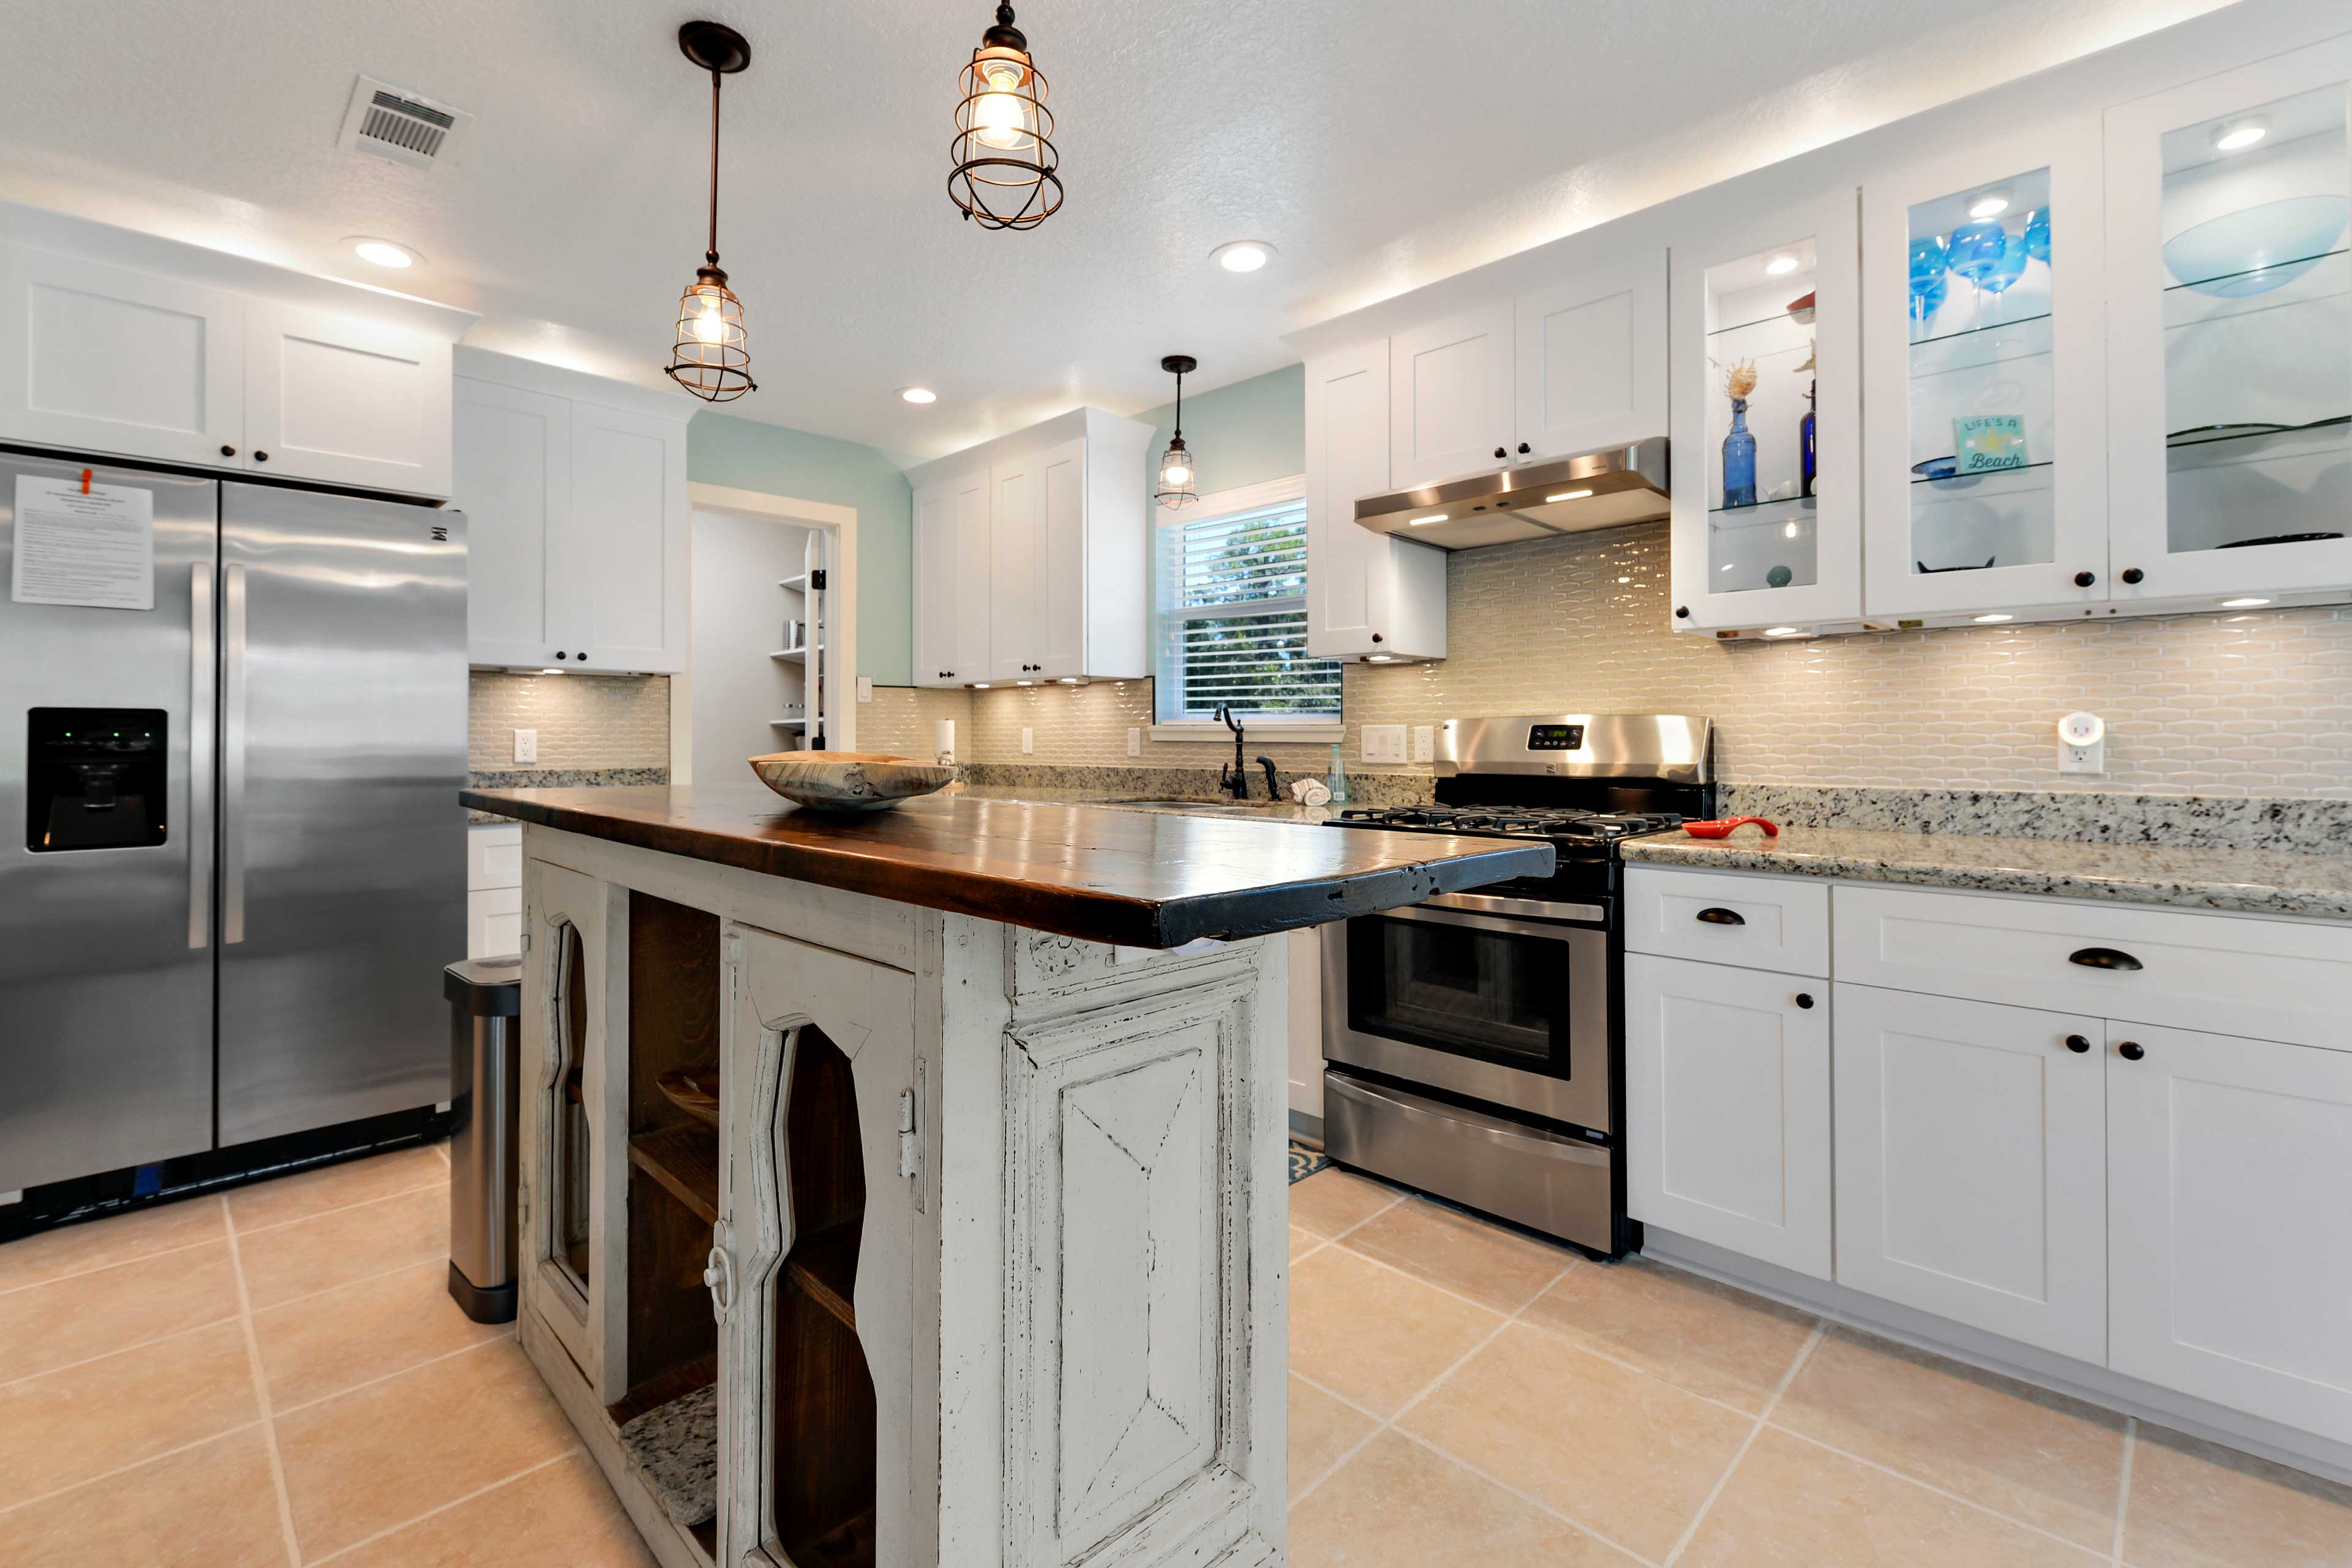 The fully equipped kitchen features an island and stainless steel appliances.